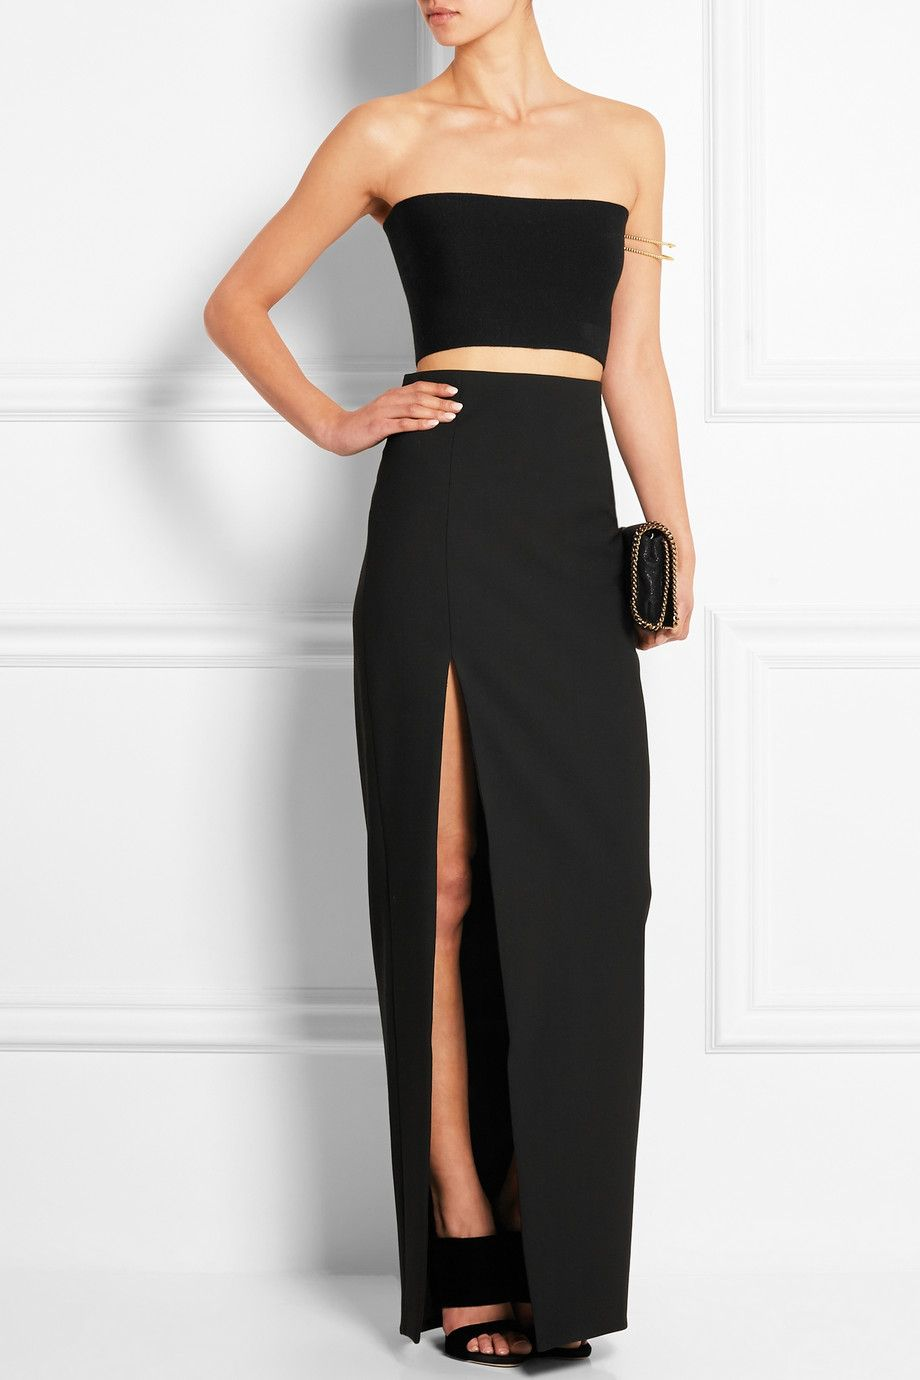 Top dresses to wear to a wedding  Calvin Klein Collection  Stretchknit bandeau top  NETAPORTER